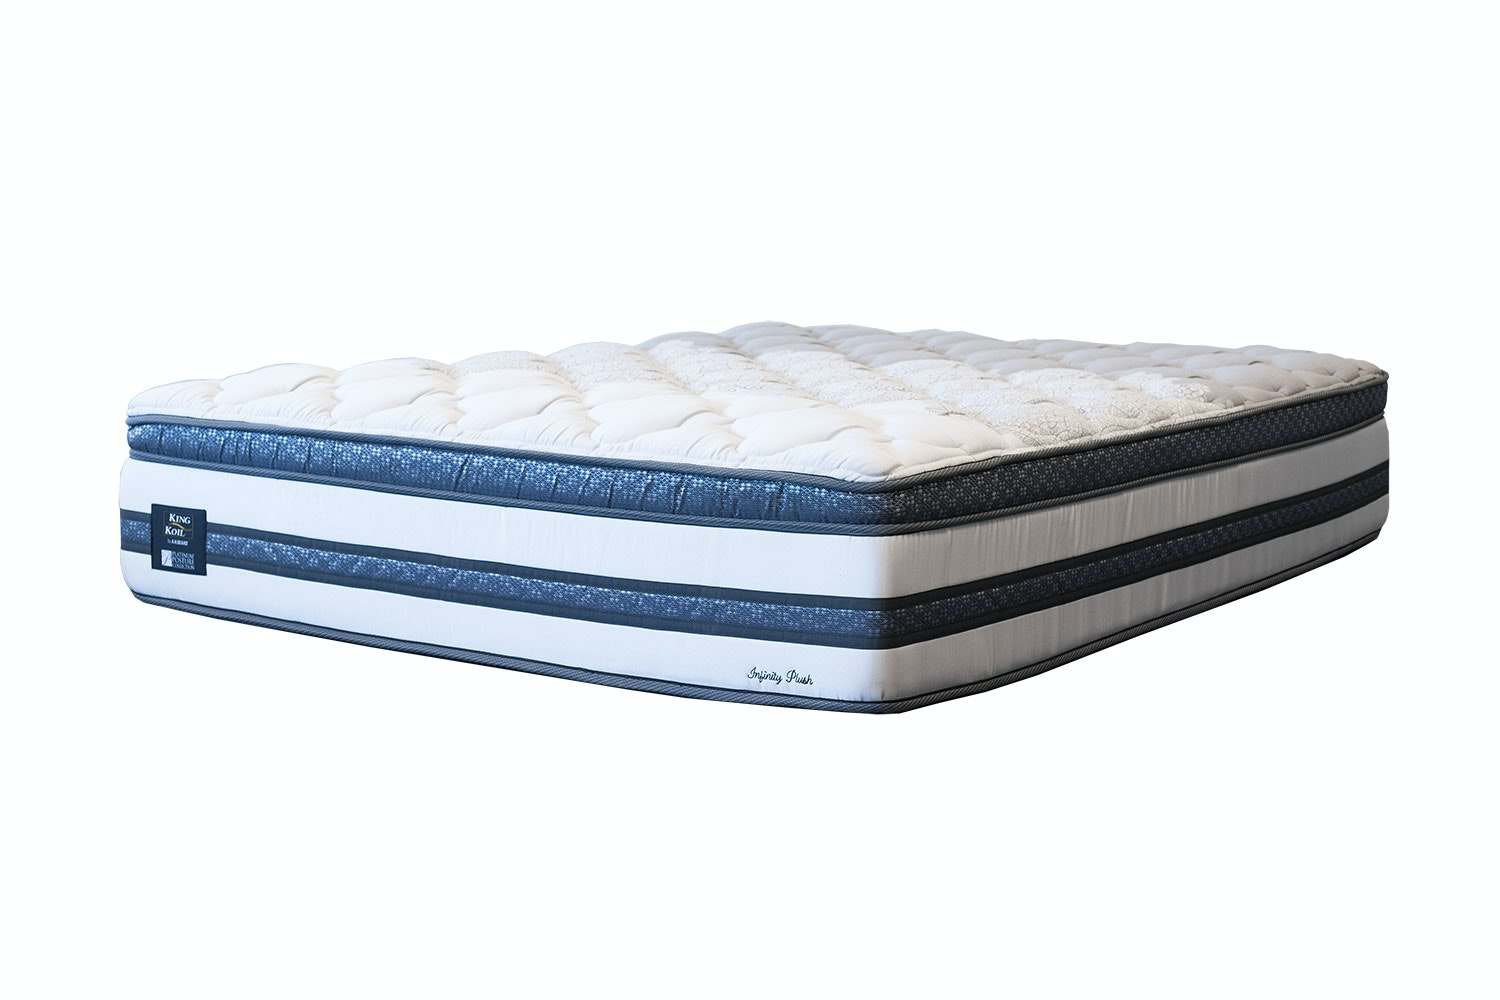 Infinity Plush Queen Mattress by King Koil